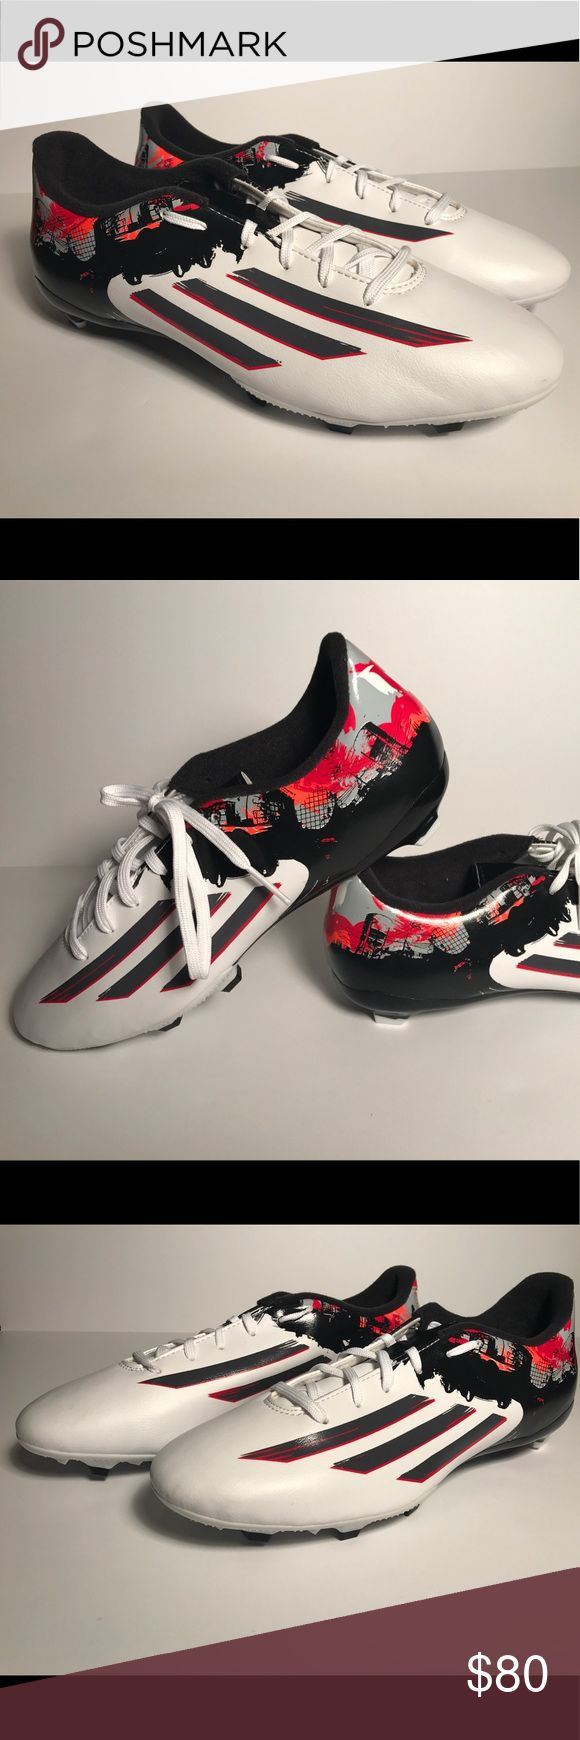 Adidas Messi Pibe de Barr10 10.3 soccer cleats 9.5 Brand new. Never worn. Size 9.5 B23766 Lionel Messi shoe inspired by the graffiti in his neighborhood.  White/sharp grey/light scarlet  Firm-ground soccer boots/ shoes Die-cut EVA insole No box. adidas Shoes Athletic Shoes